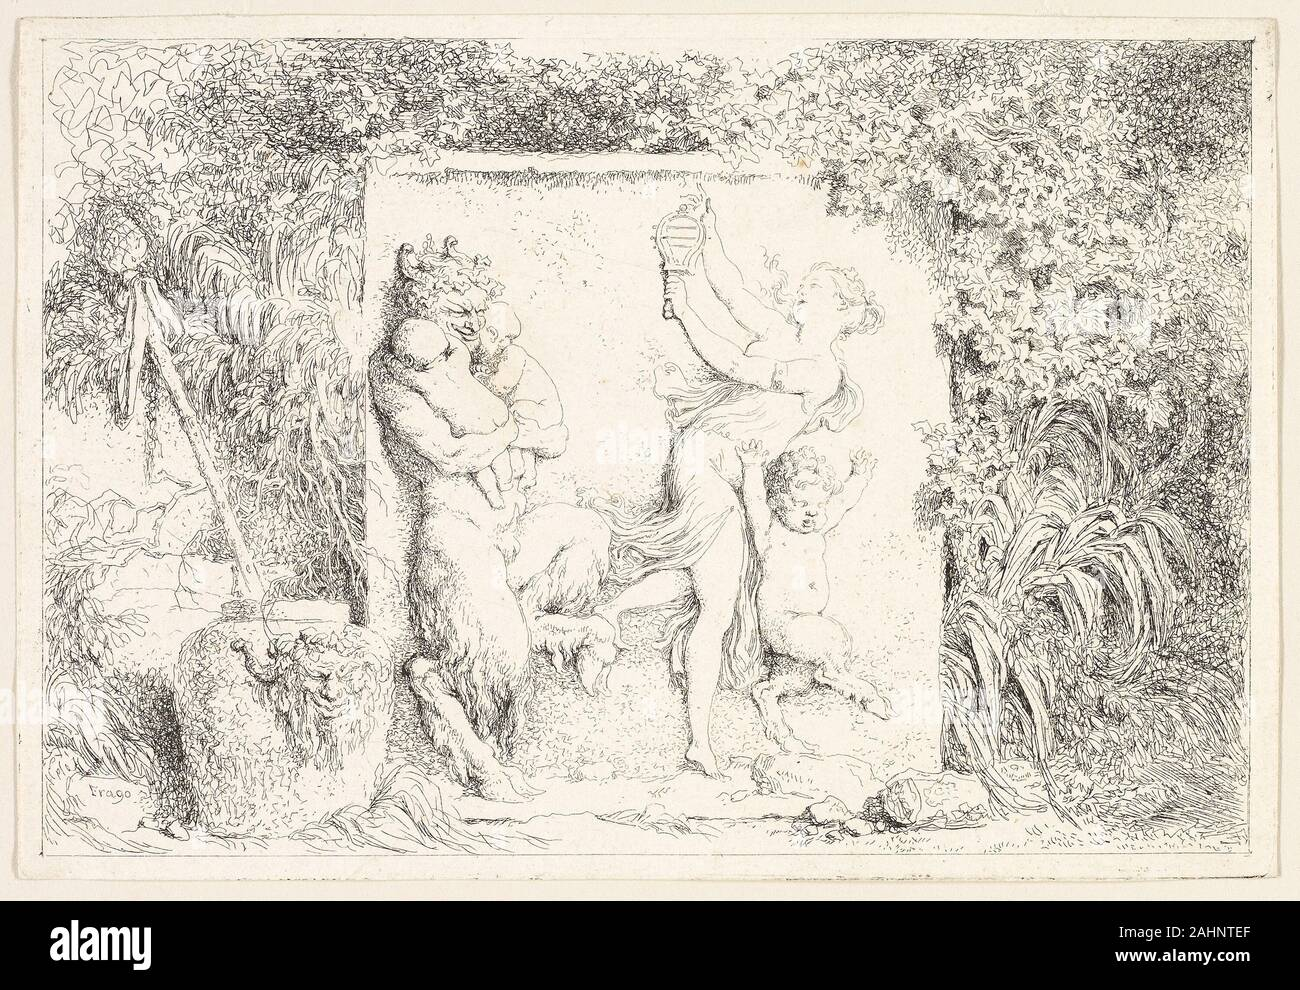 Jean Honoré Fragonard. Satyrs Dancing from Bacchanales, or Satyrs' Games. 1763. France. Etching on ivory laid paper Fragonard may have copied the relief within his Satyrs Dancing from an ancient bacchic sarcophagus. The swaying nymph holds a noise-making rattle, and the artist implies that, however improbably, this sculptural figure has deposited her pinecone-topped thyrsos outside the frame. It leans at a jaunty angle in the bacchic vessel at left, which is decorated with a smirking face and grapevine crown. The thyrsos was one of the wine god Dionysos's main attributes. These figures could w Stock Photo